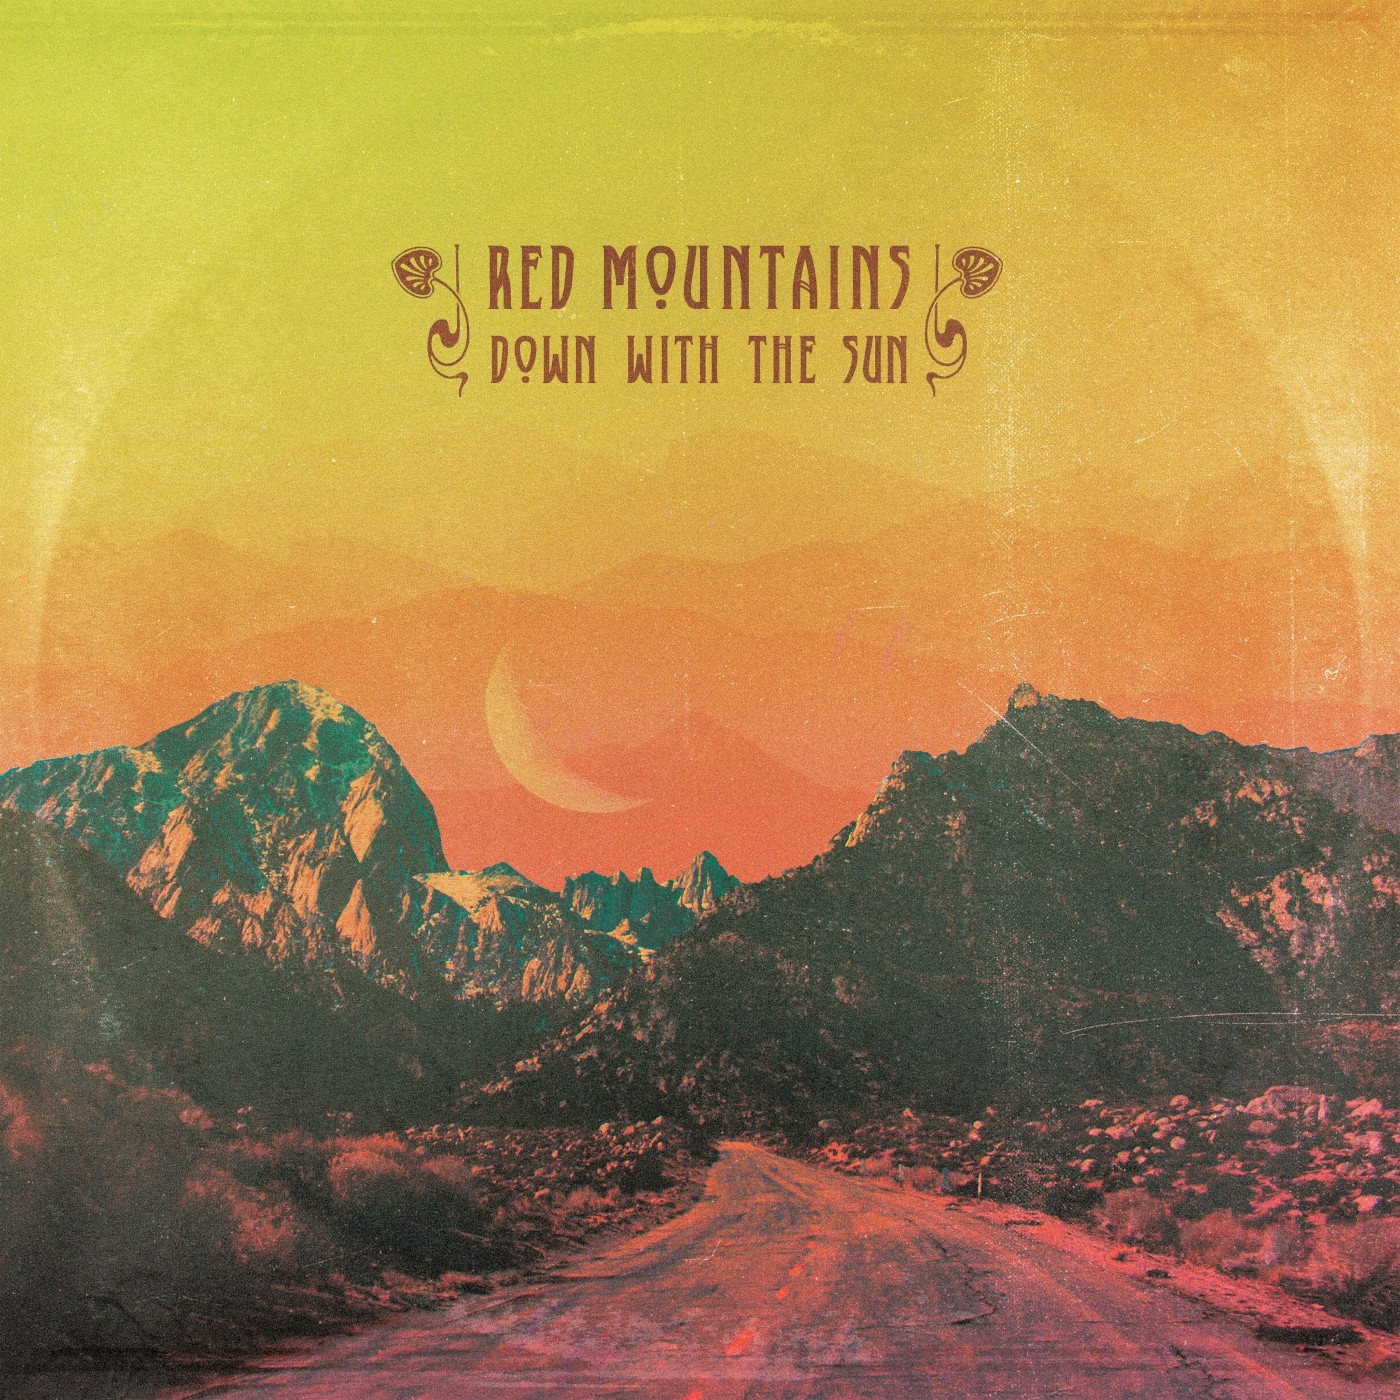 red mountains down with the sun